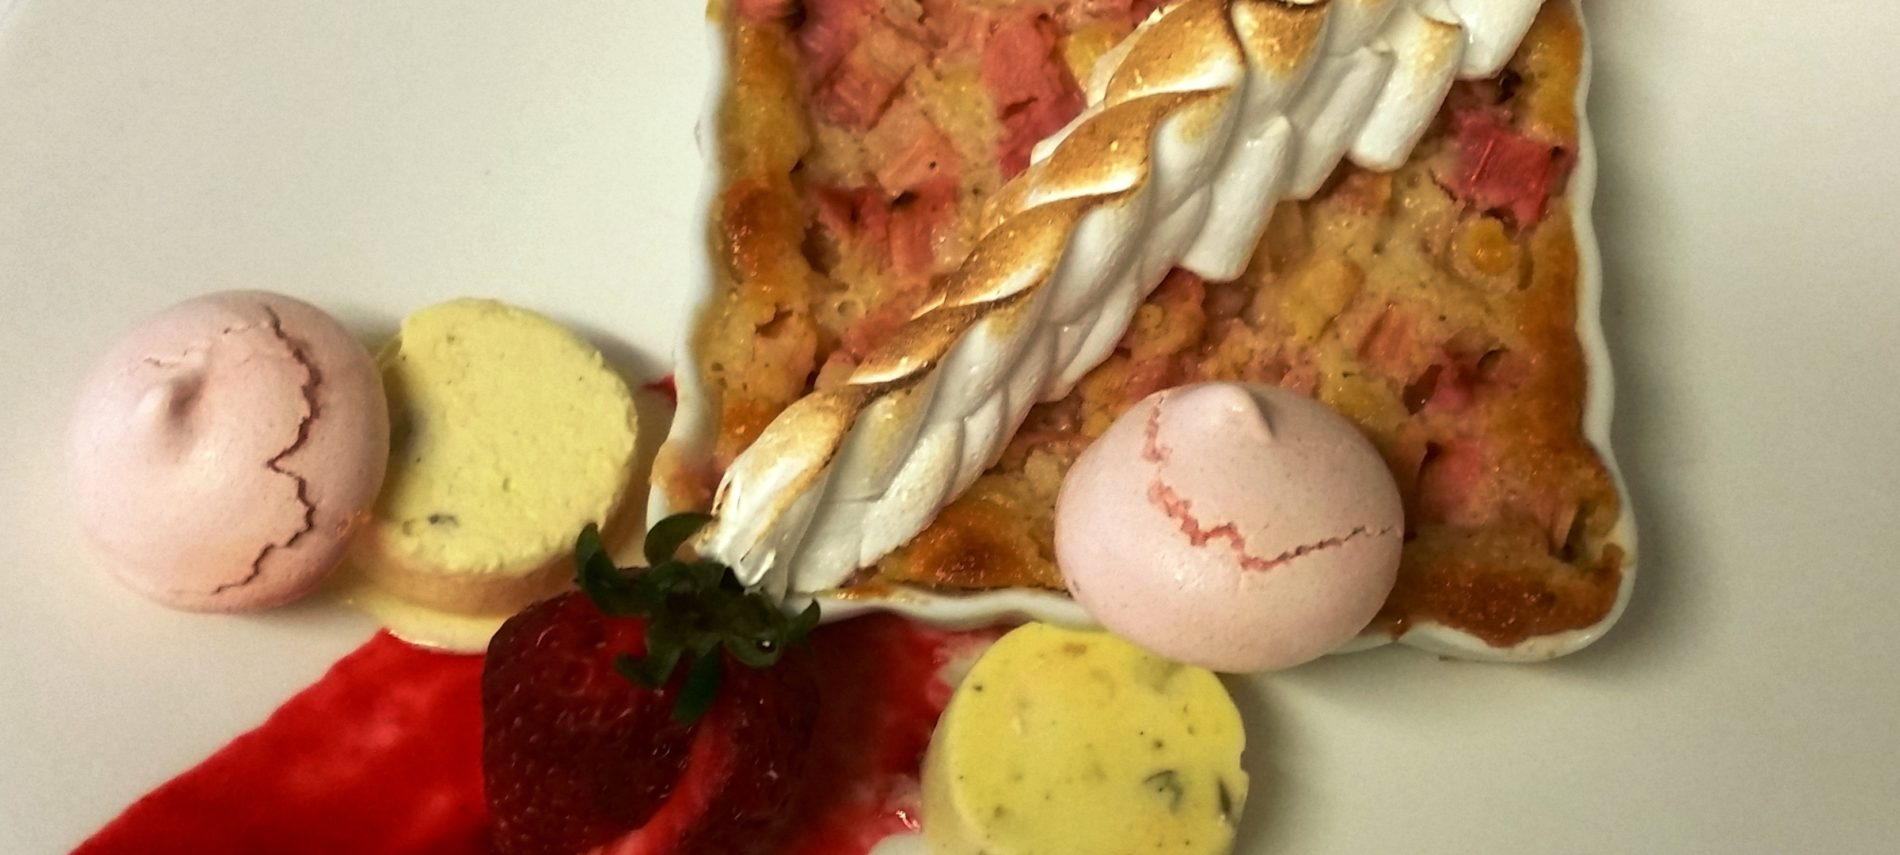 Photo of rhubarb custard with maringue and cookies from Rabbit Hill Inn